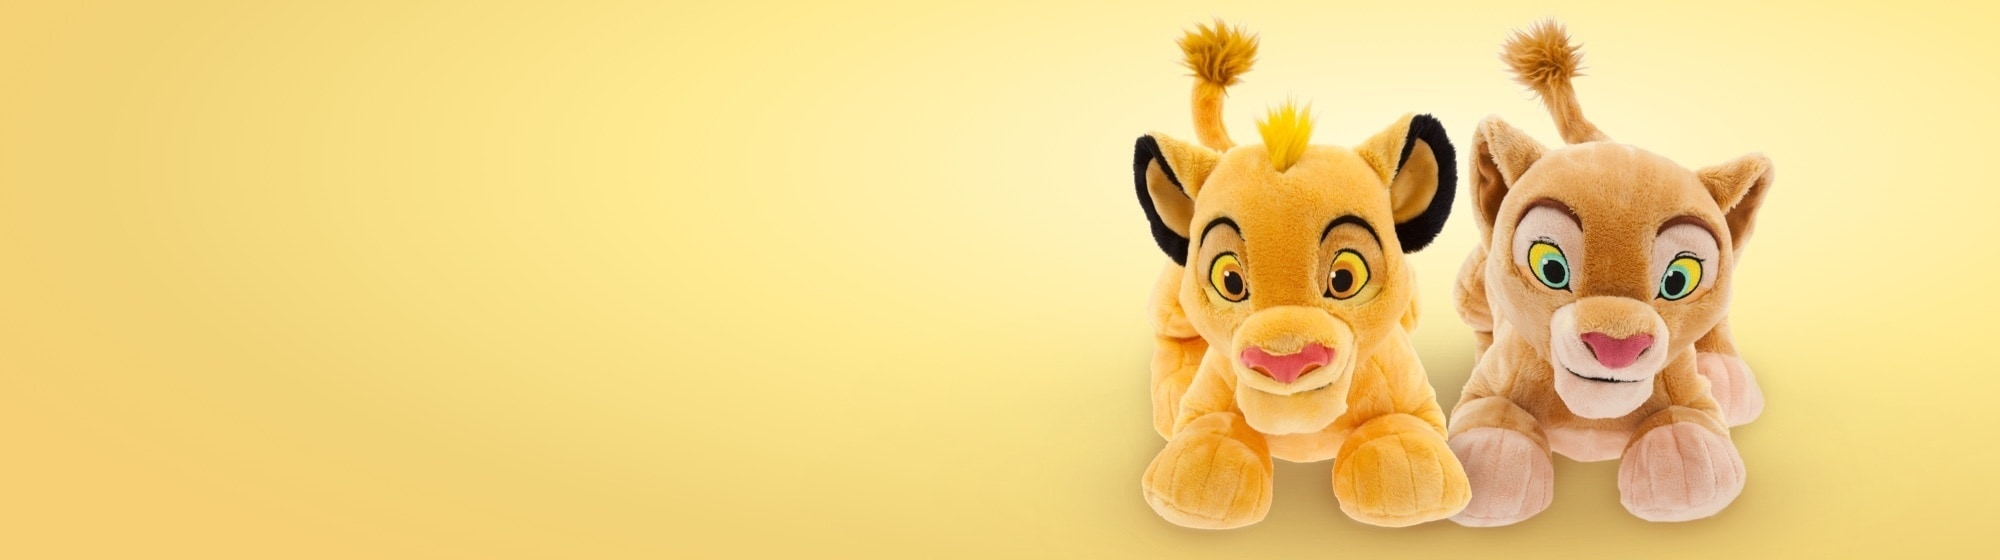 The Lion King | shopDisney